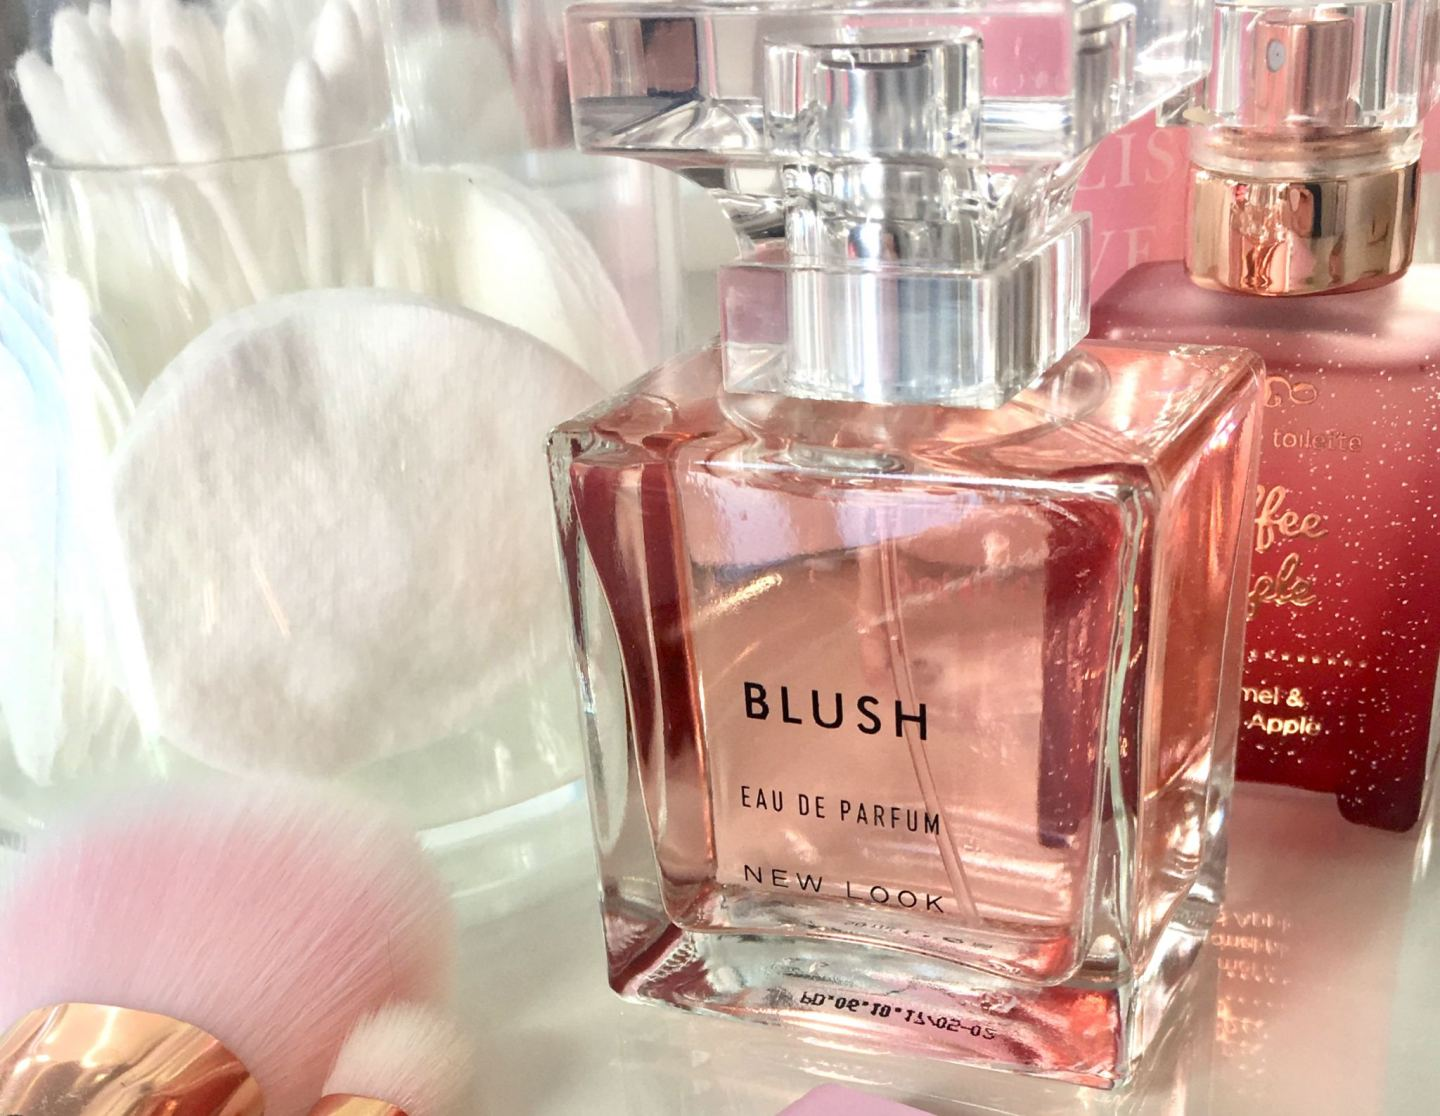 Blush fragrance by New look. A Chanel Coco dupe.